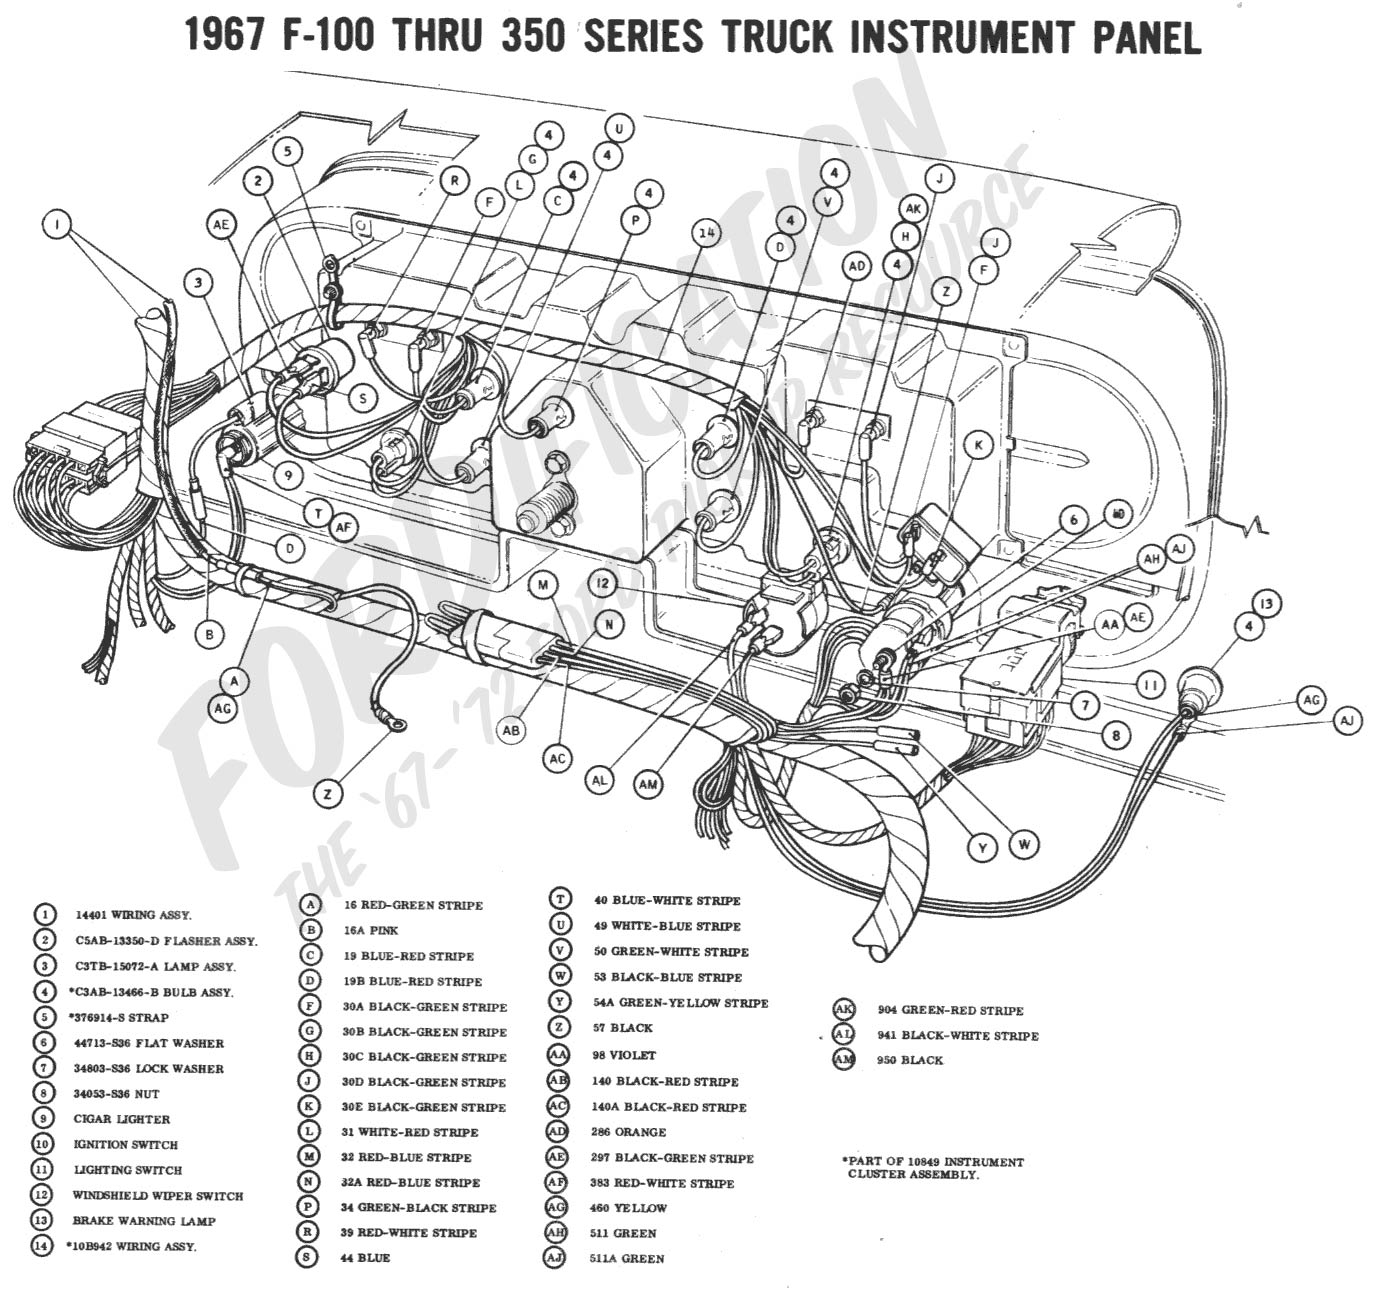 wiring 1967instrumentpanel ford truck technical drawings and schematics section h wiring Ford F-250 Wiring Diagram at alyssarenee.co